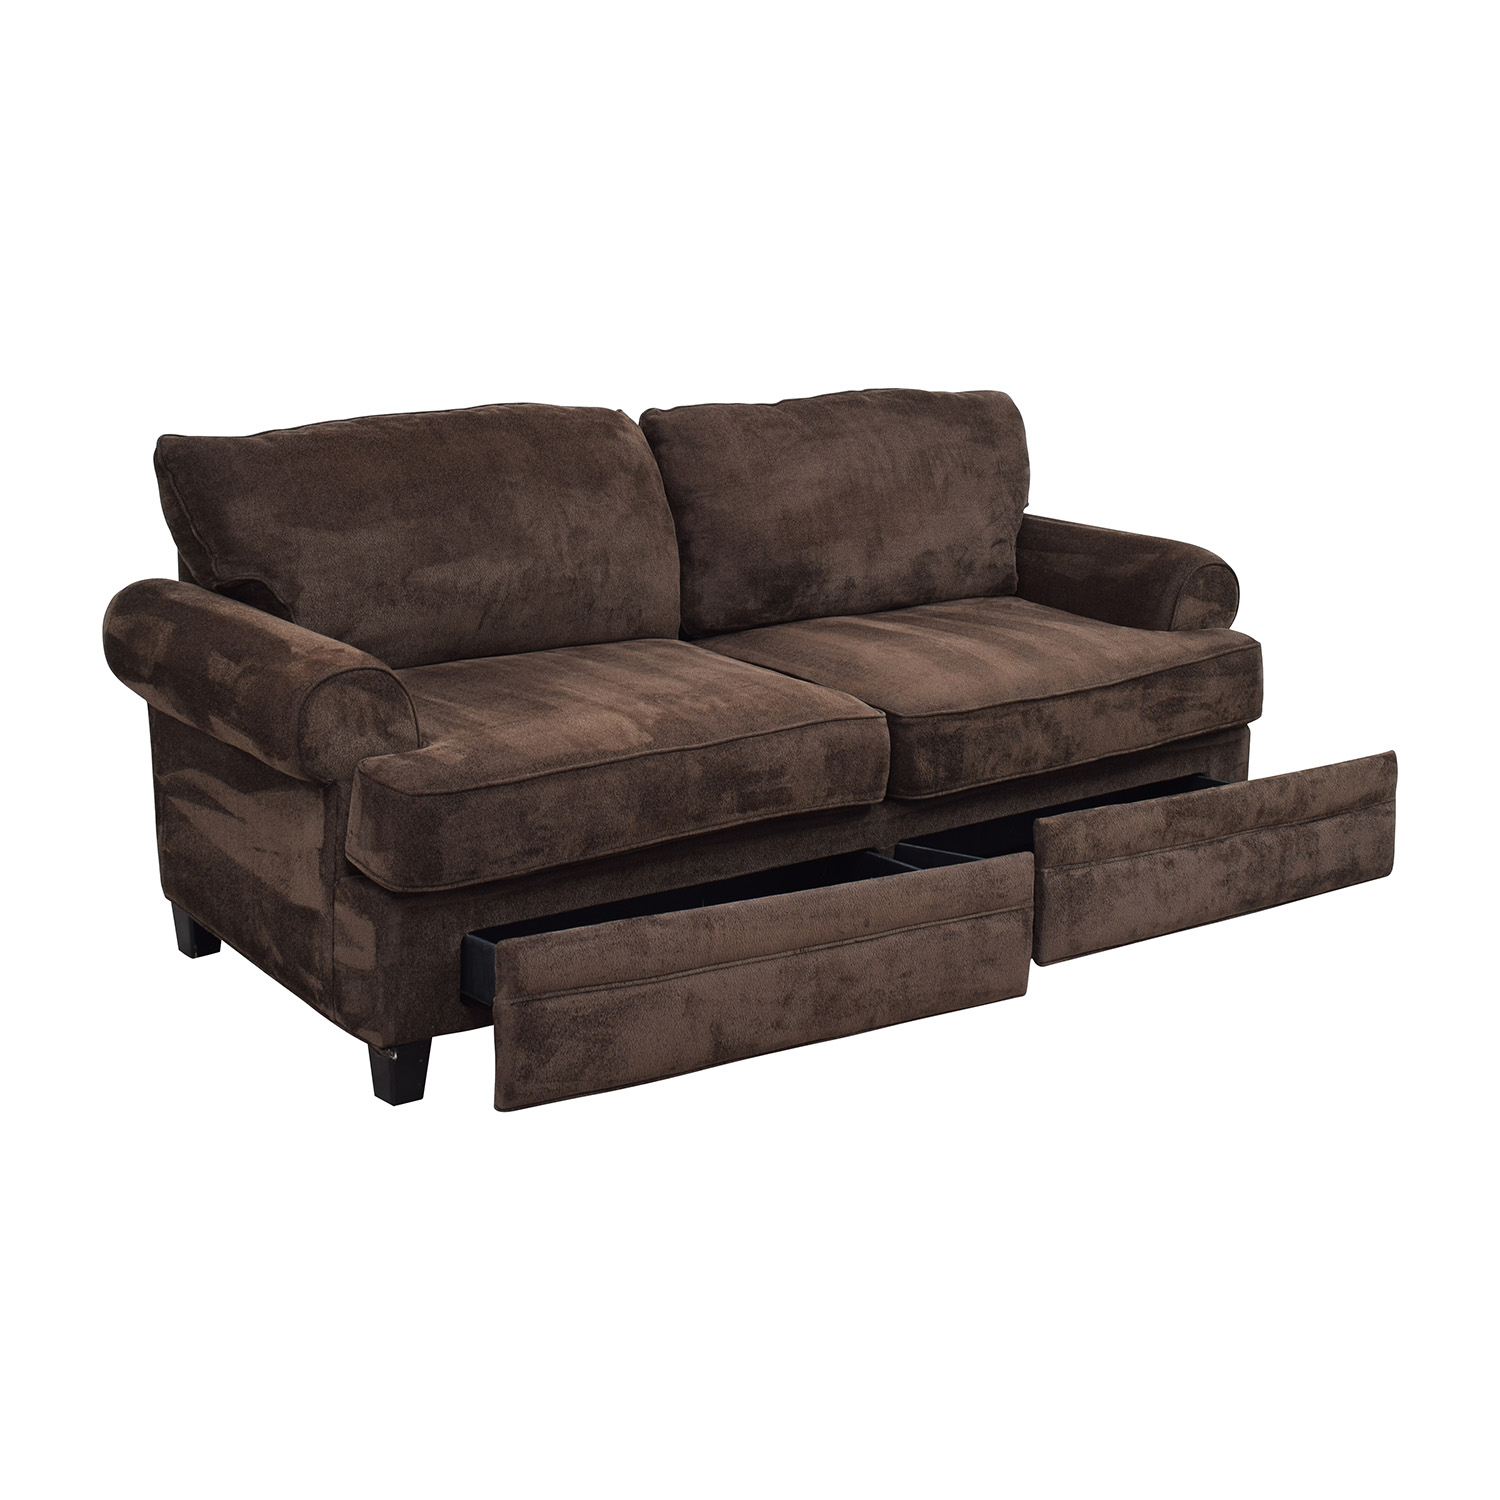 68% OFF Bob s Furniture Bob Furniture Kendall II Brown Sofa with